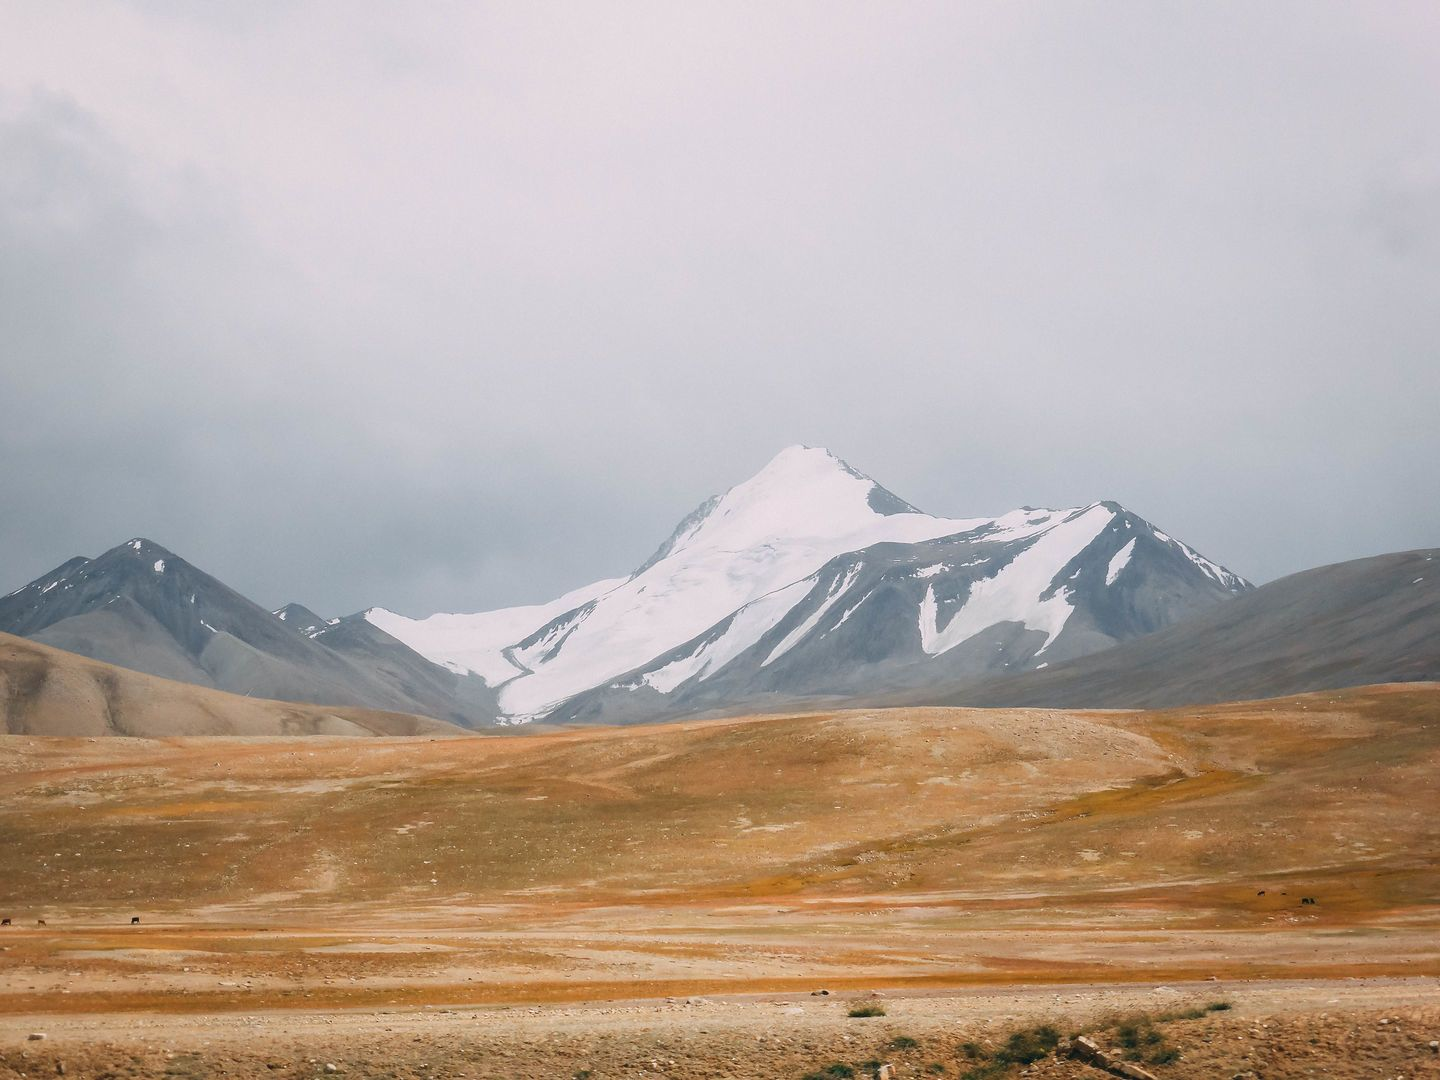 Pamir Highway, Roof of the World